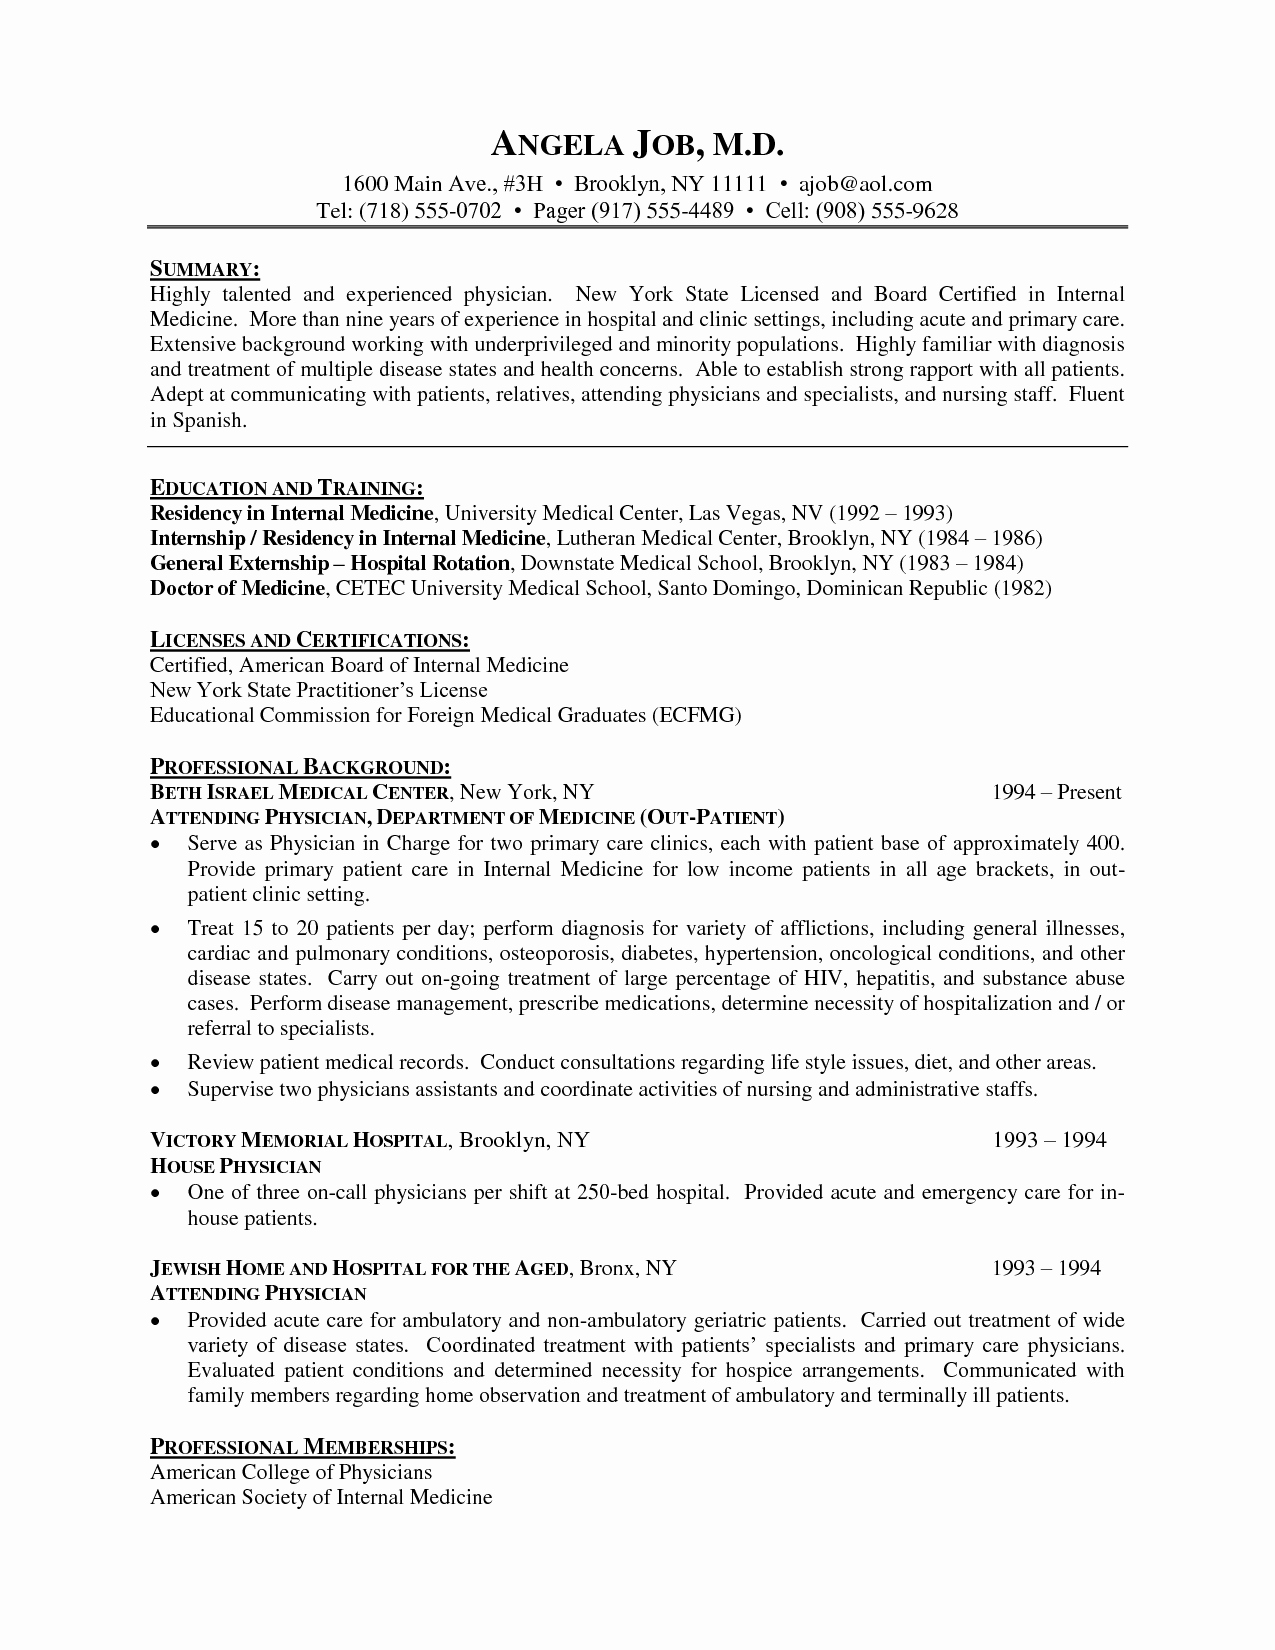 Physician Cv Template Word Awesome Resume Template Medical Doctor Cv Resume Physician Cv